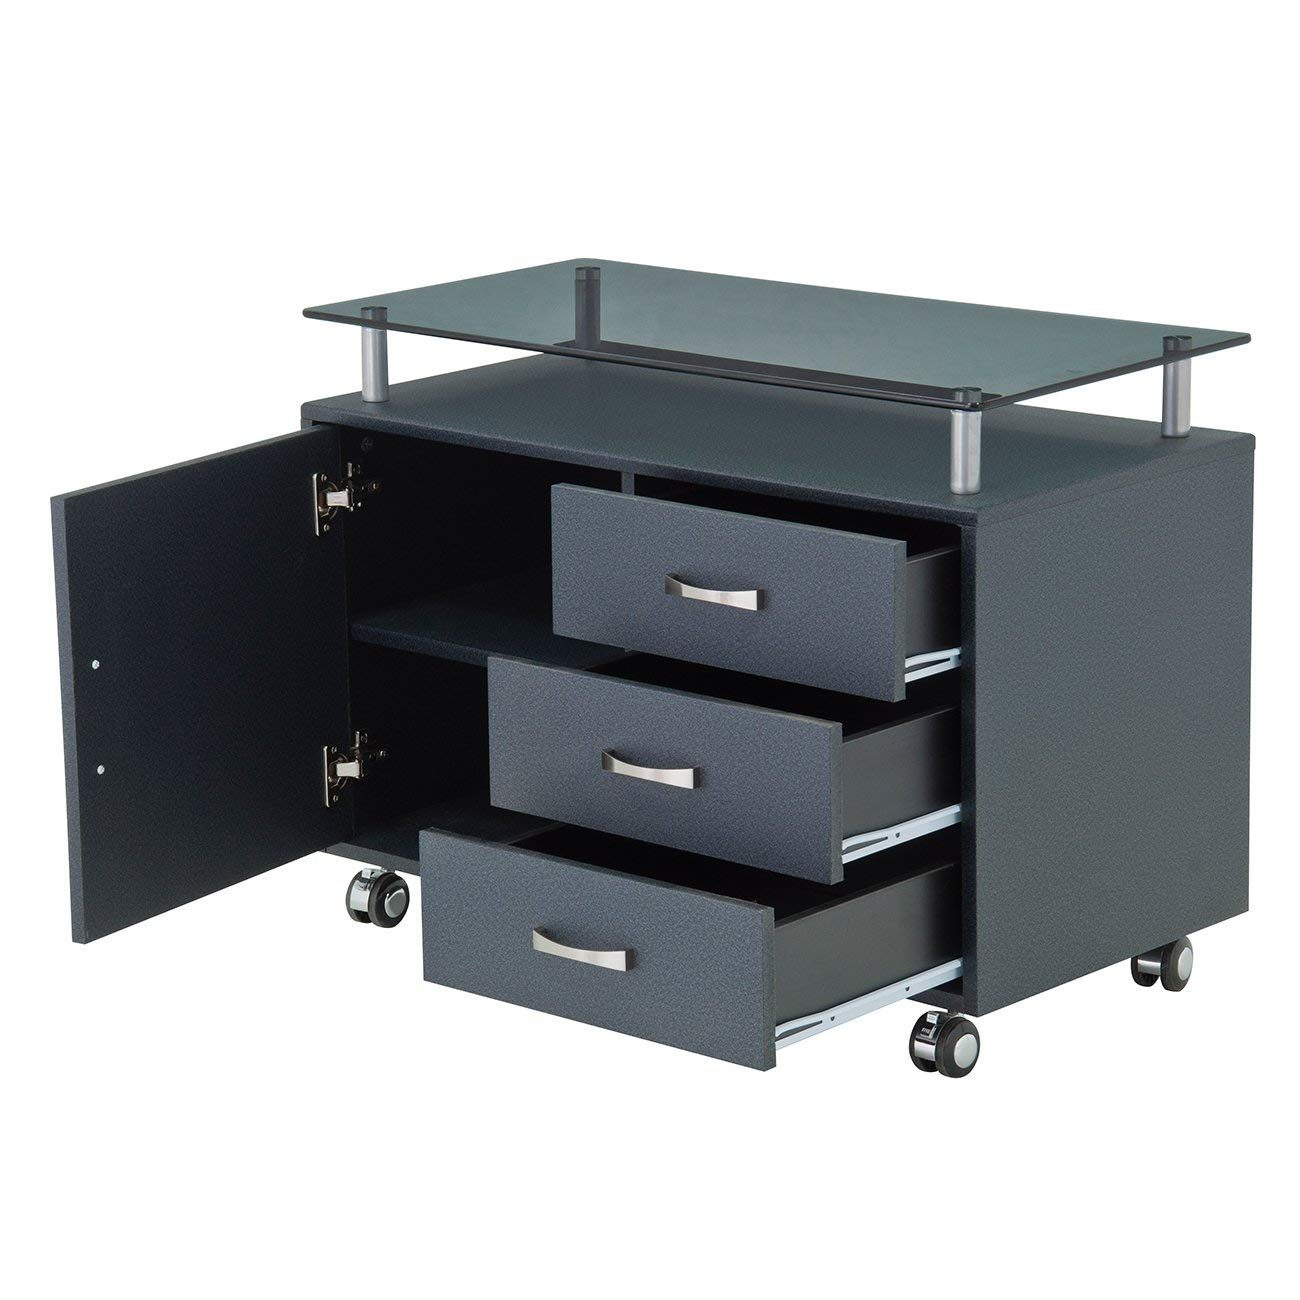 Rolling Storage Cabinet With Frosted Glass Top. Color: Graphite by Techni Mobili (Image #6)